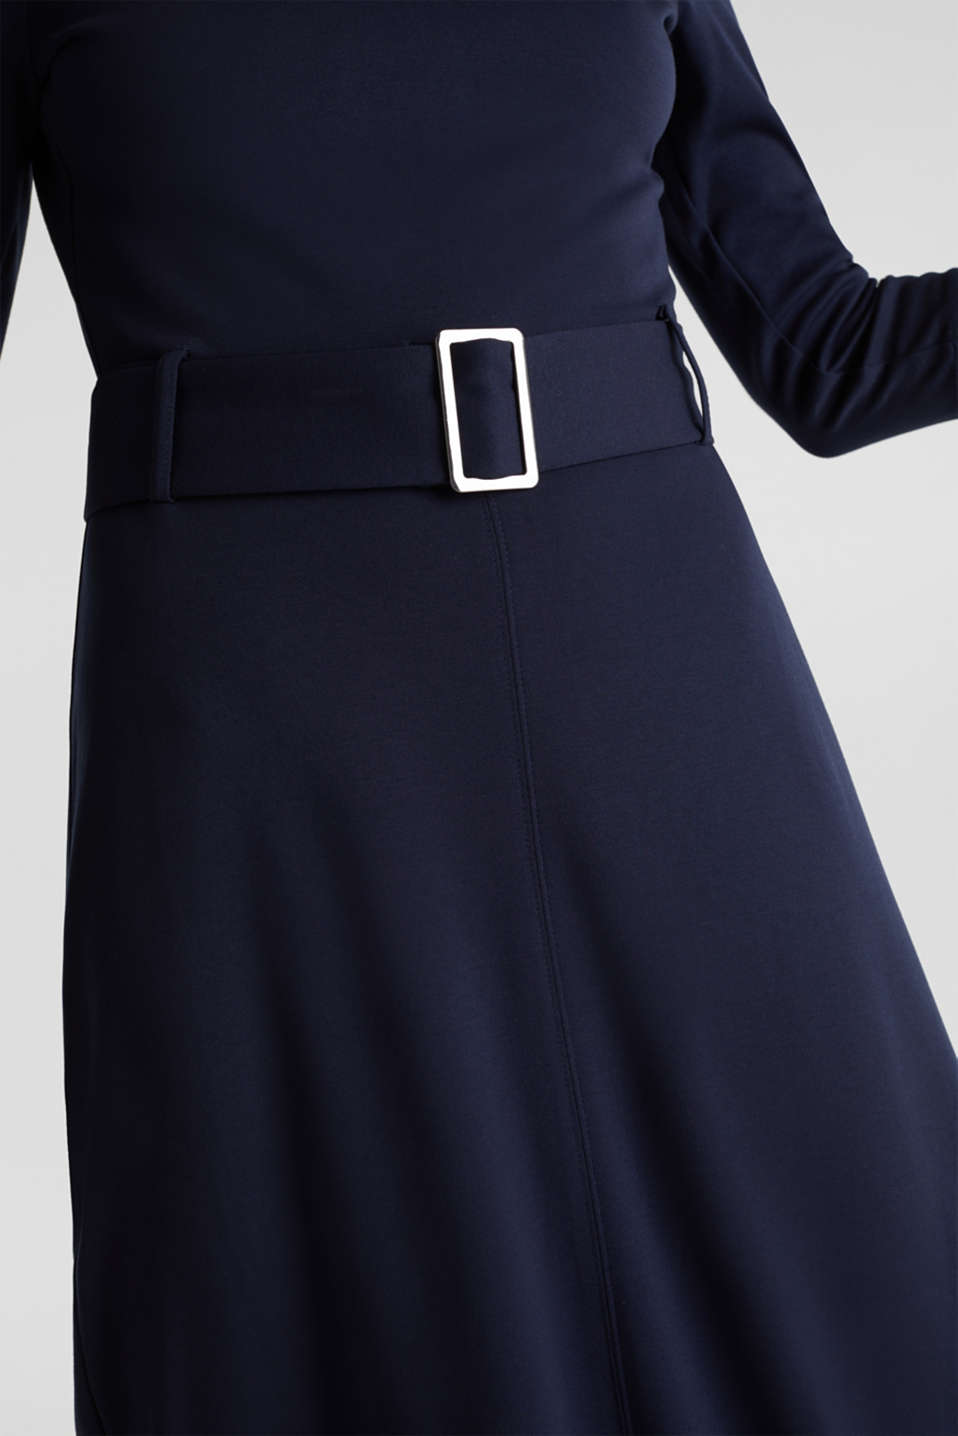 Stretch jersey dress with a belt, NAVY, detail image number 3